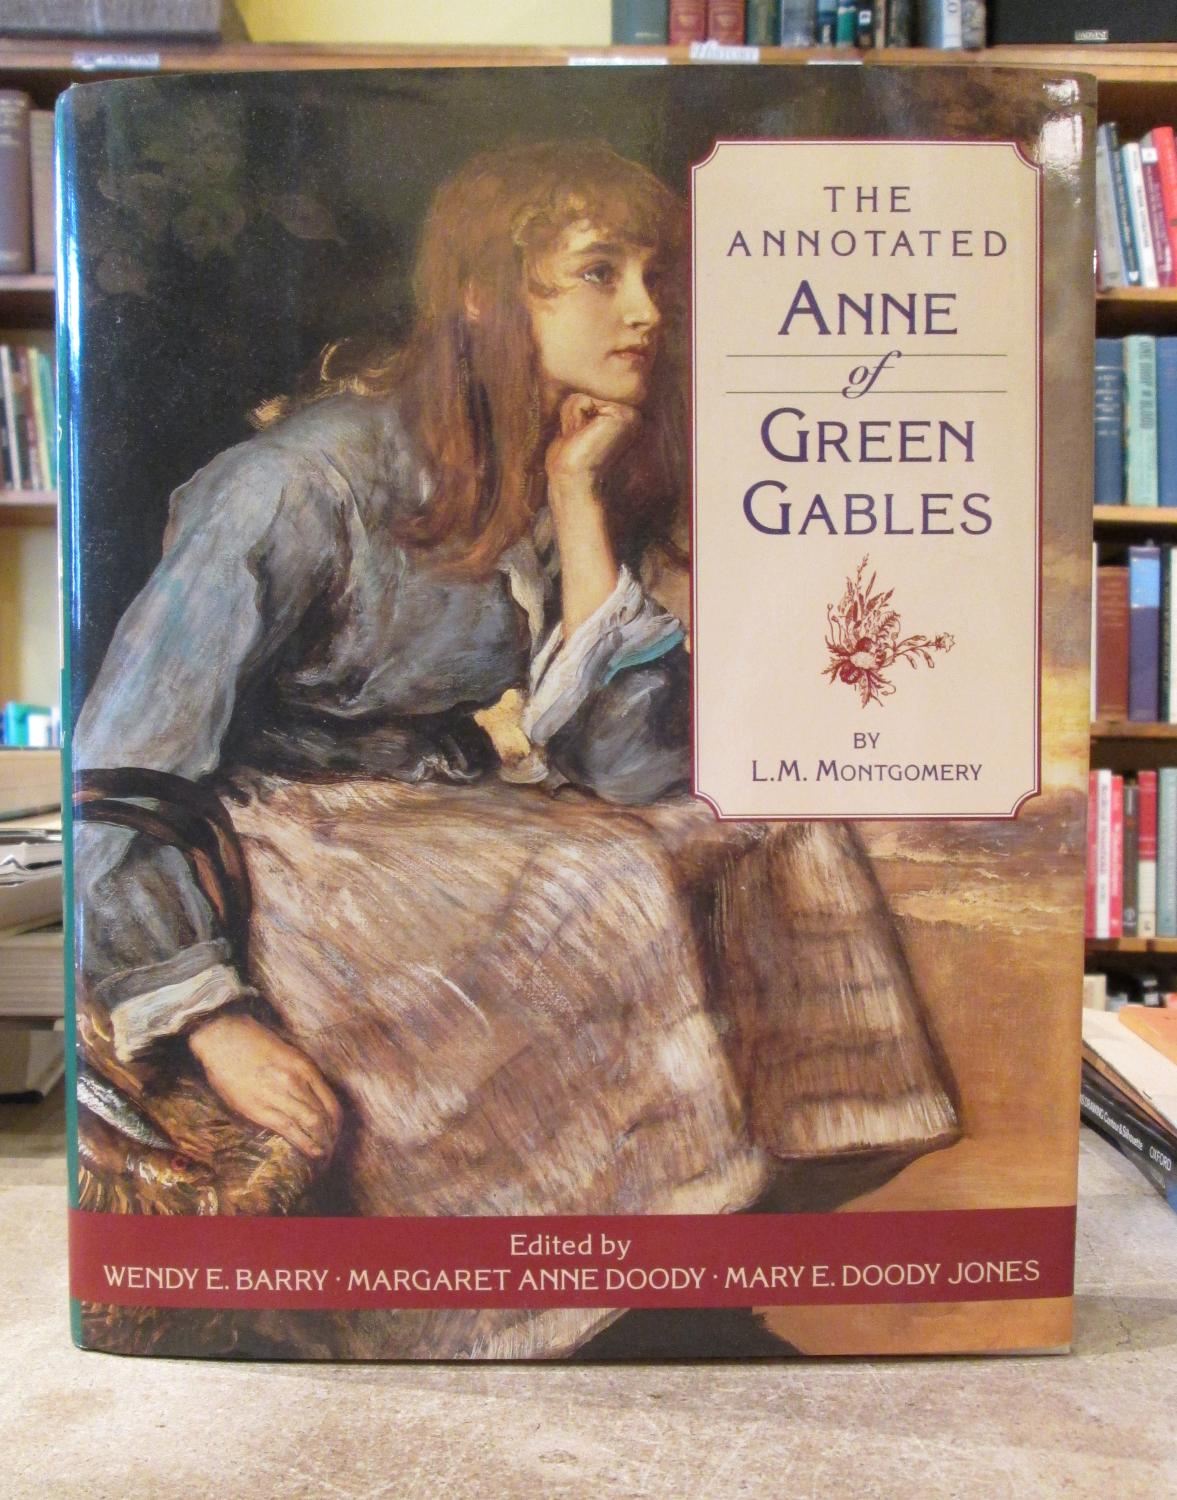 a literary analysis of anne of green gables A critical analysis of lucy maud montgomery's classic novel anne of green gables, with background material, textual notes, chronology, and critical reviews from a number of authors.